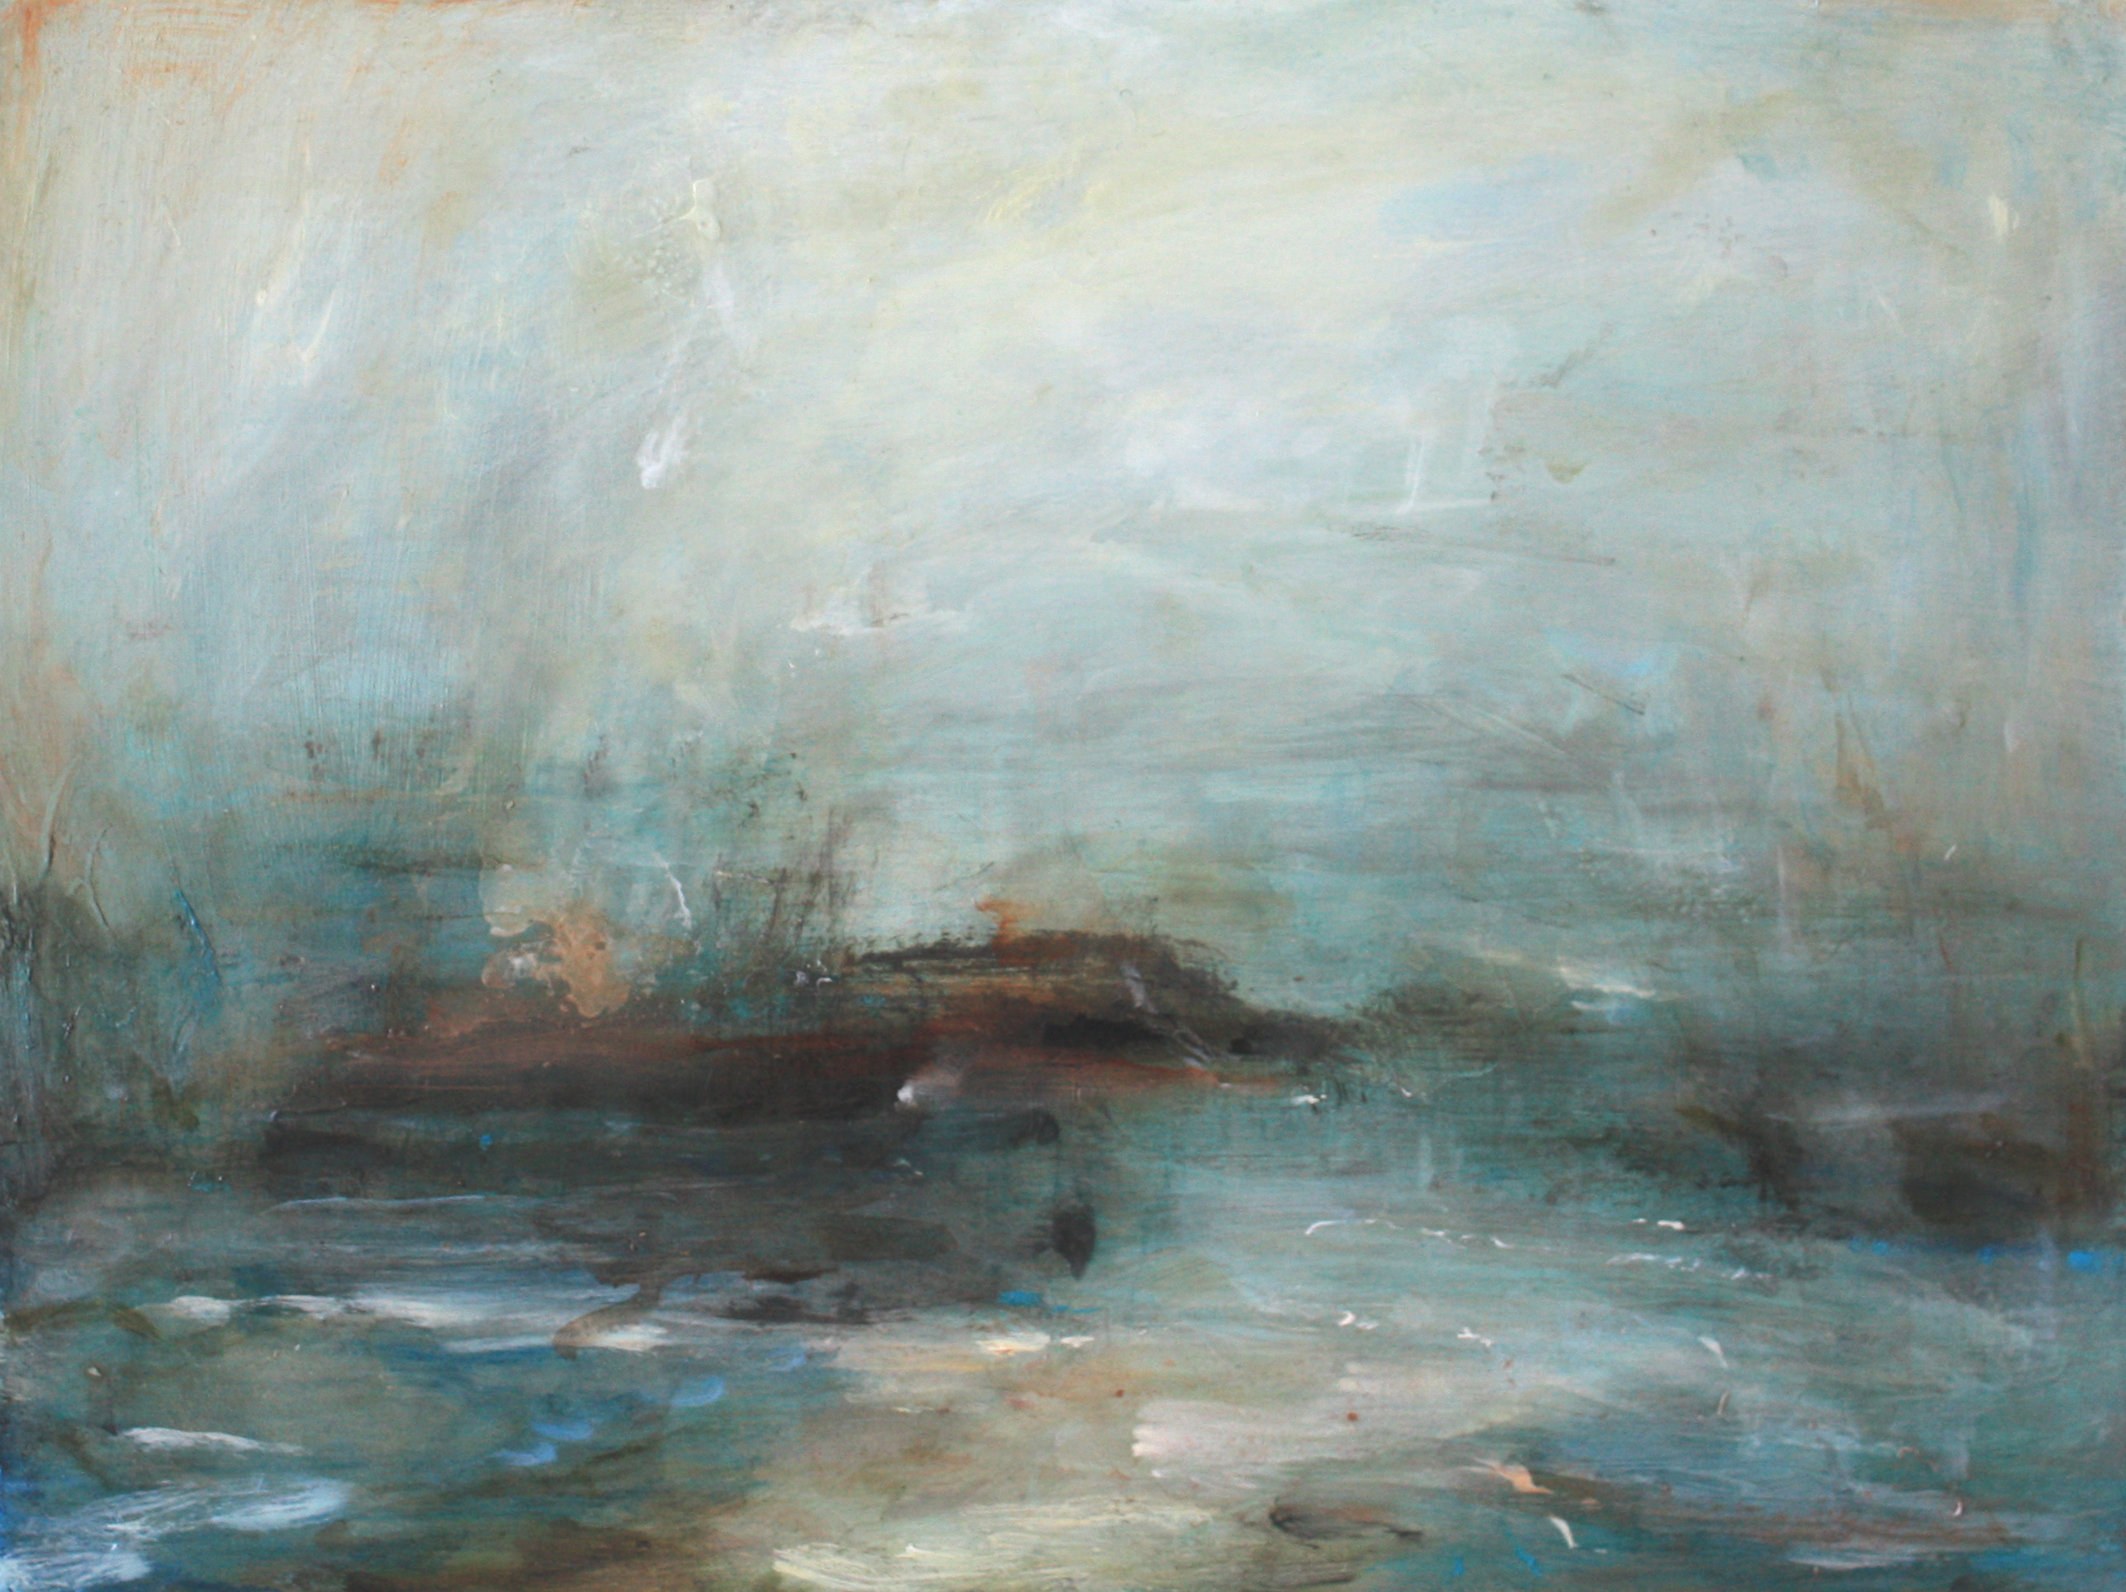 Artist: Mark Johnston  Title: Between Land and Sea  Size: 23 x 31 cm  Medium: Oil on panel  Price: £1700